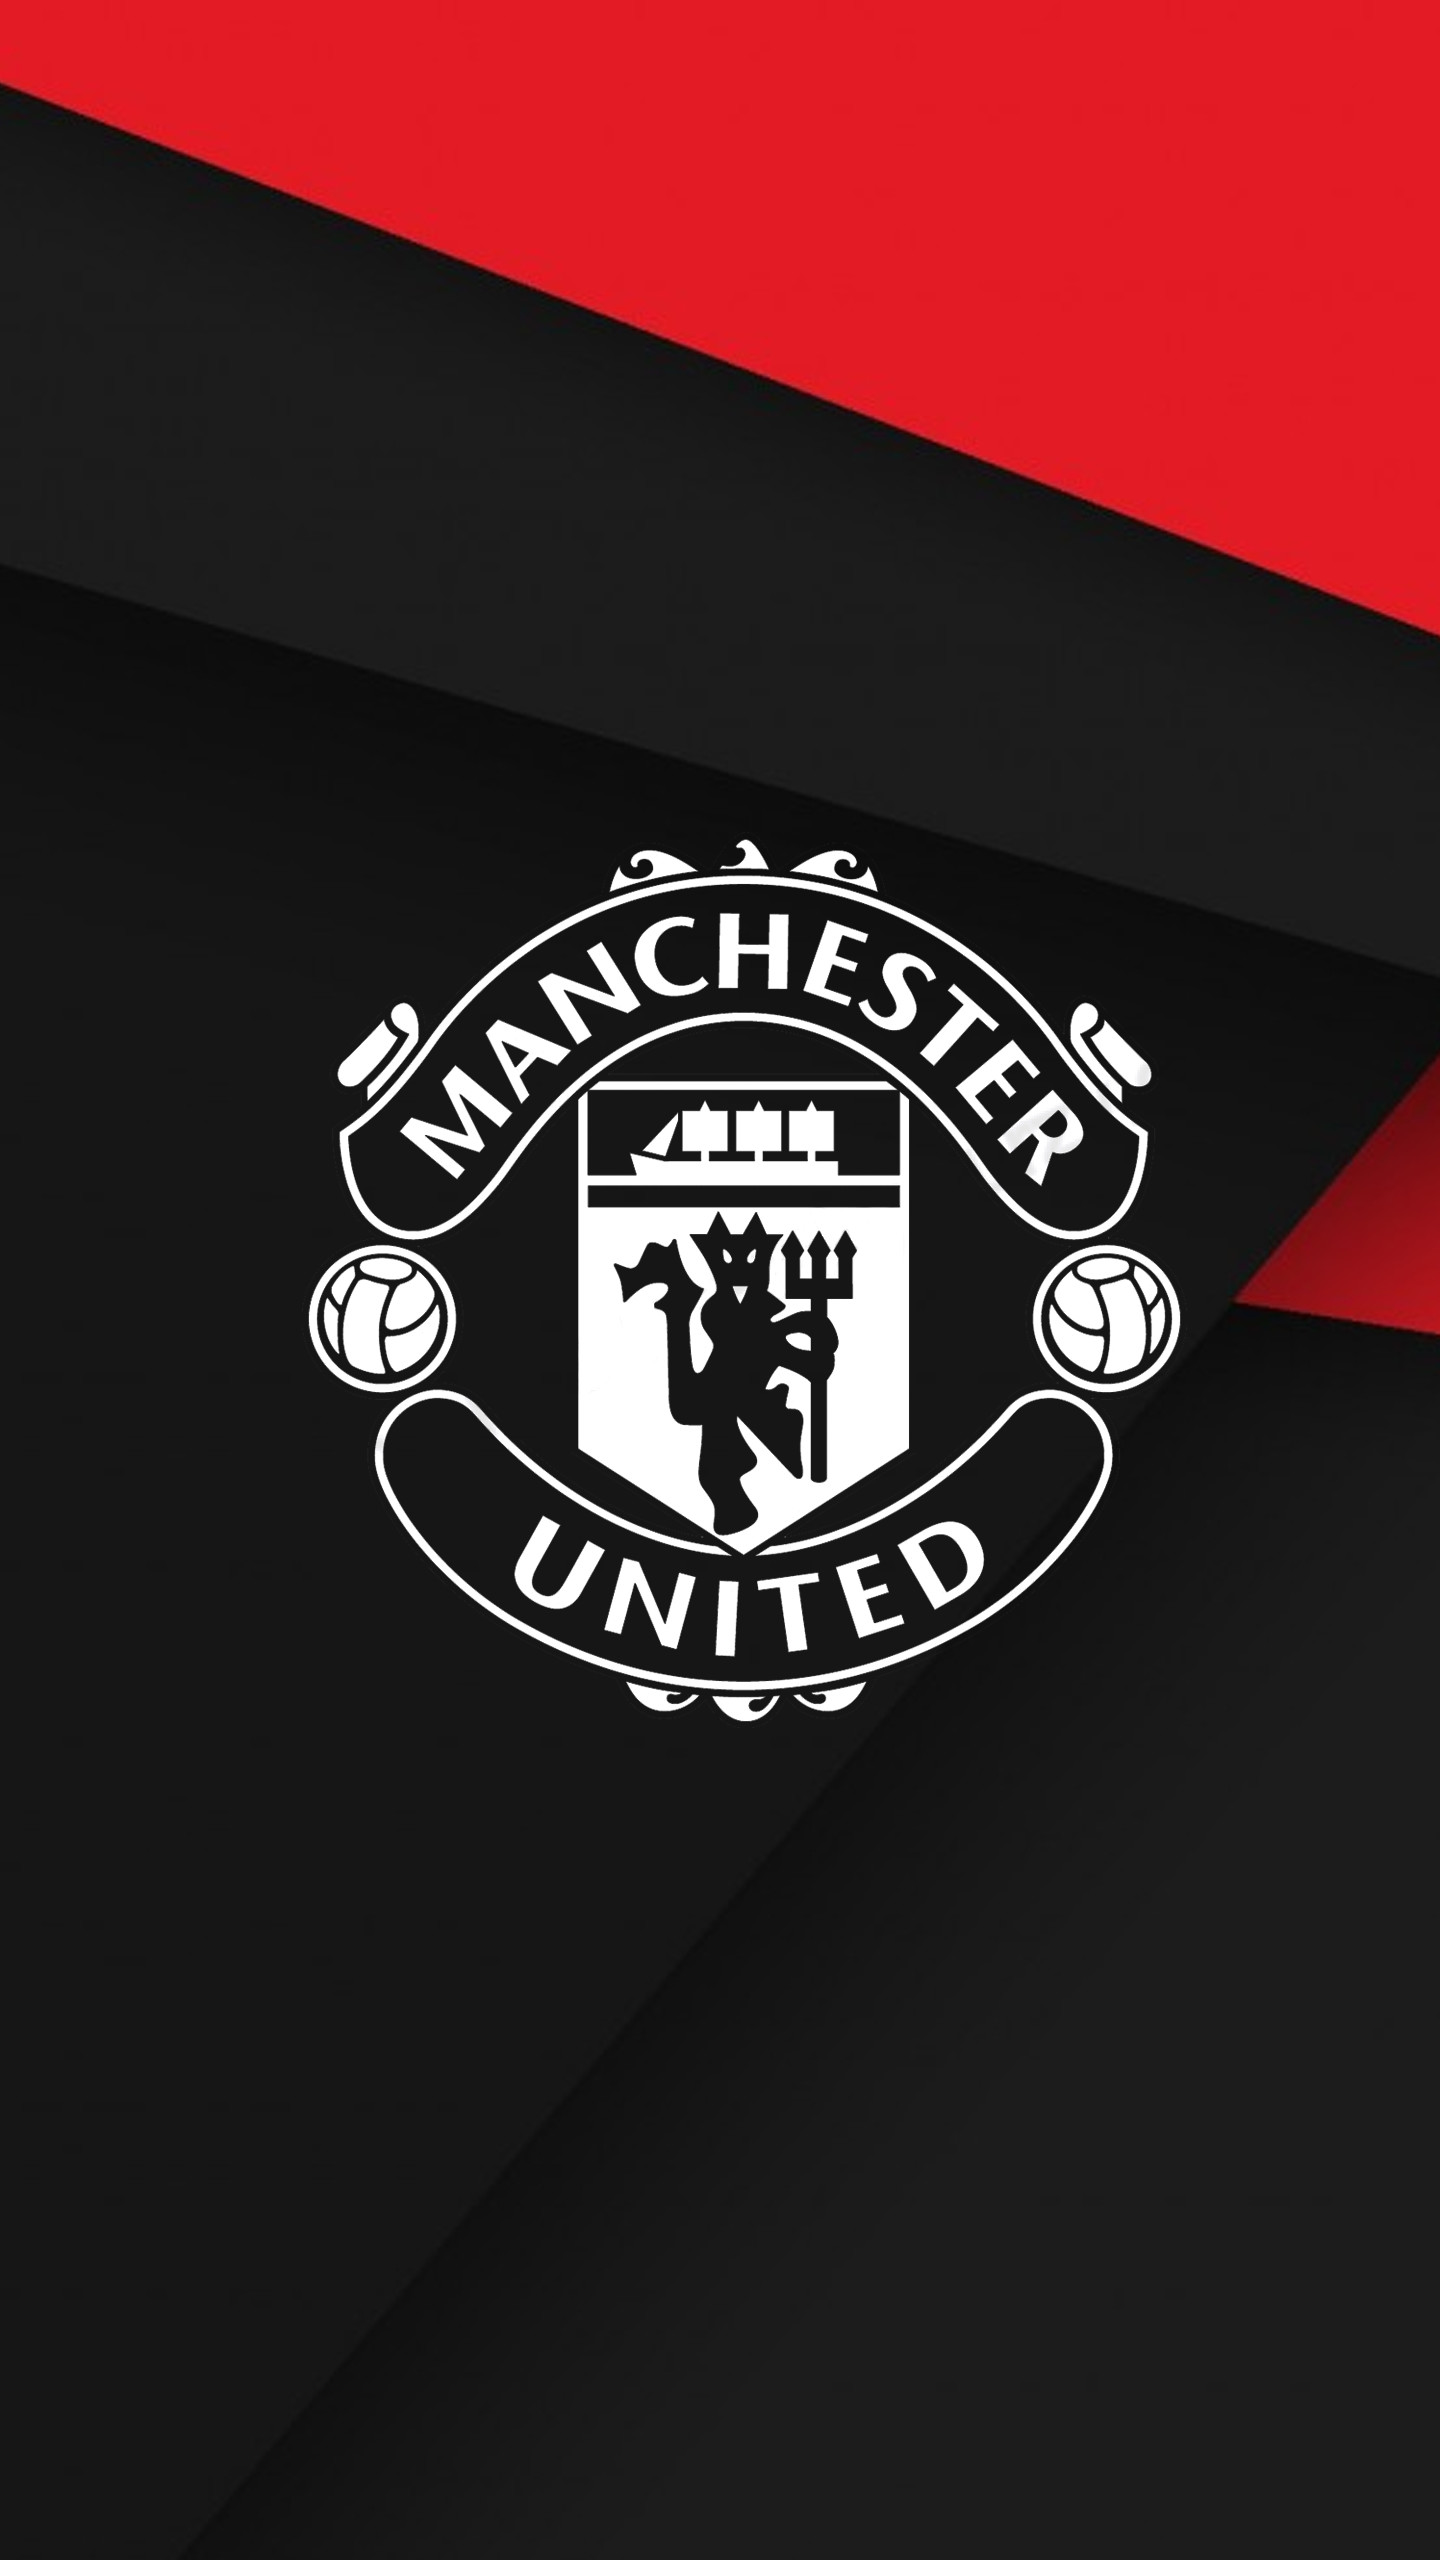 Manchester united hd wallpaper 2018 73 images - Manchester united latest wallpapers hd ...